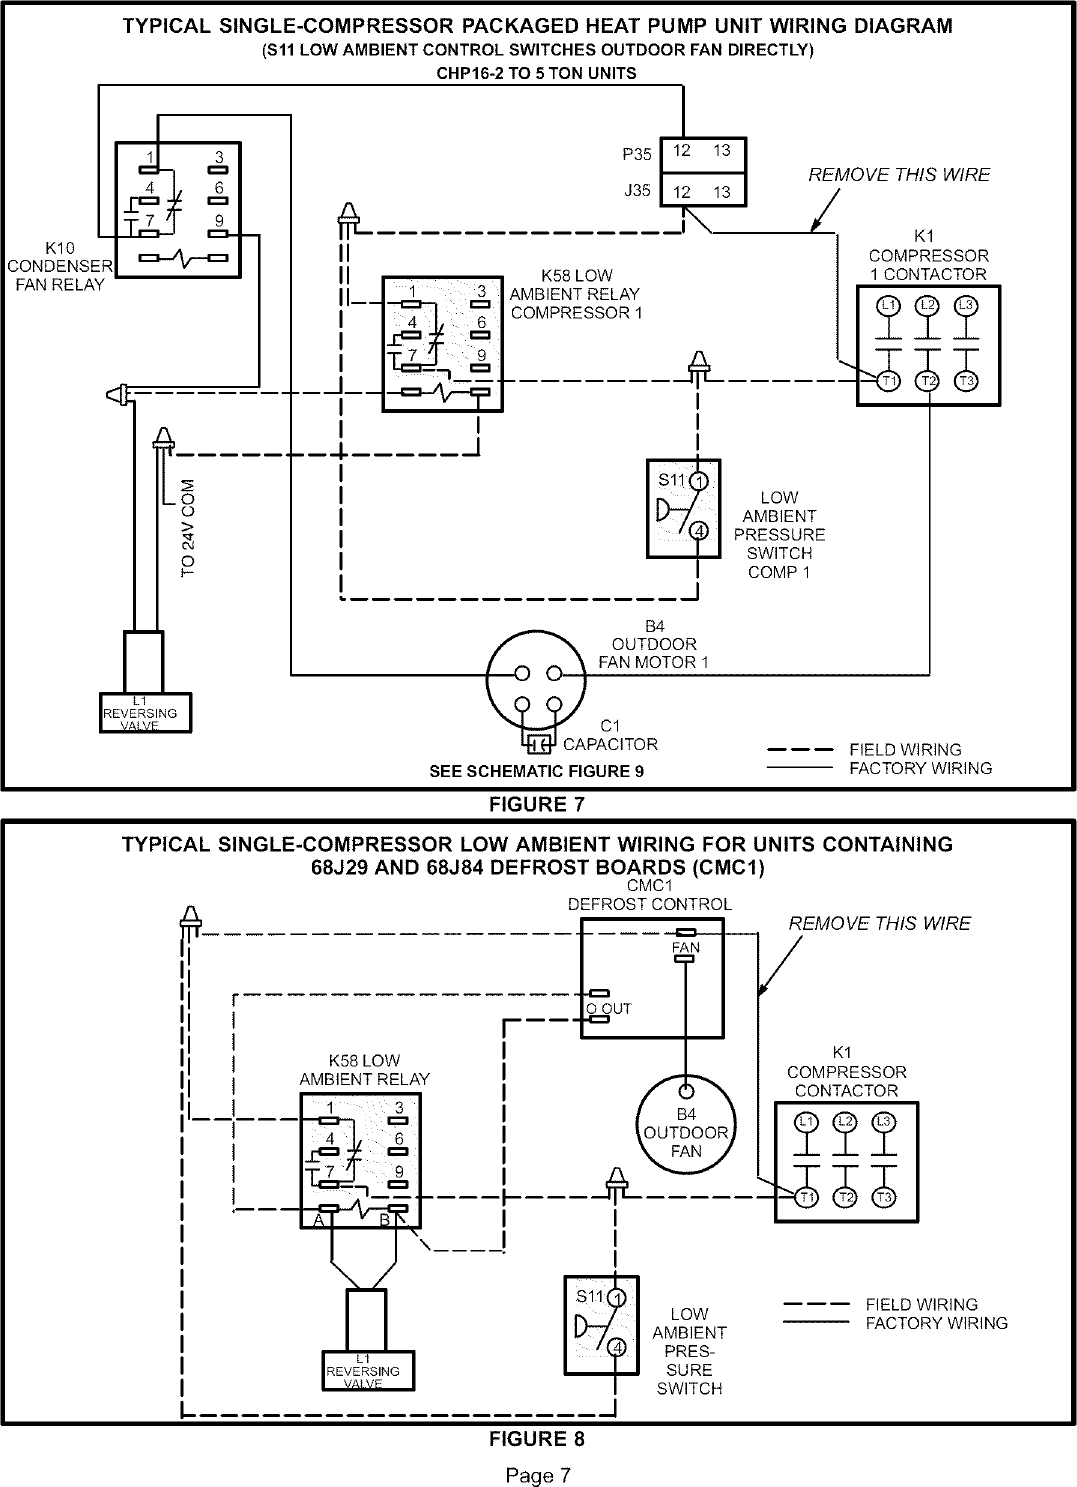 Lennox Controls And Hvac Accessories Manual L0806303 Wiring Schematic Page 7 Of 12